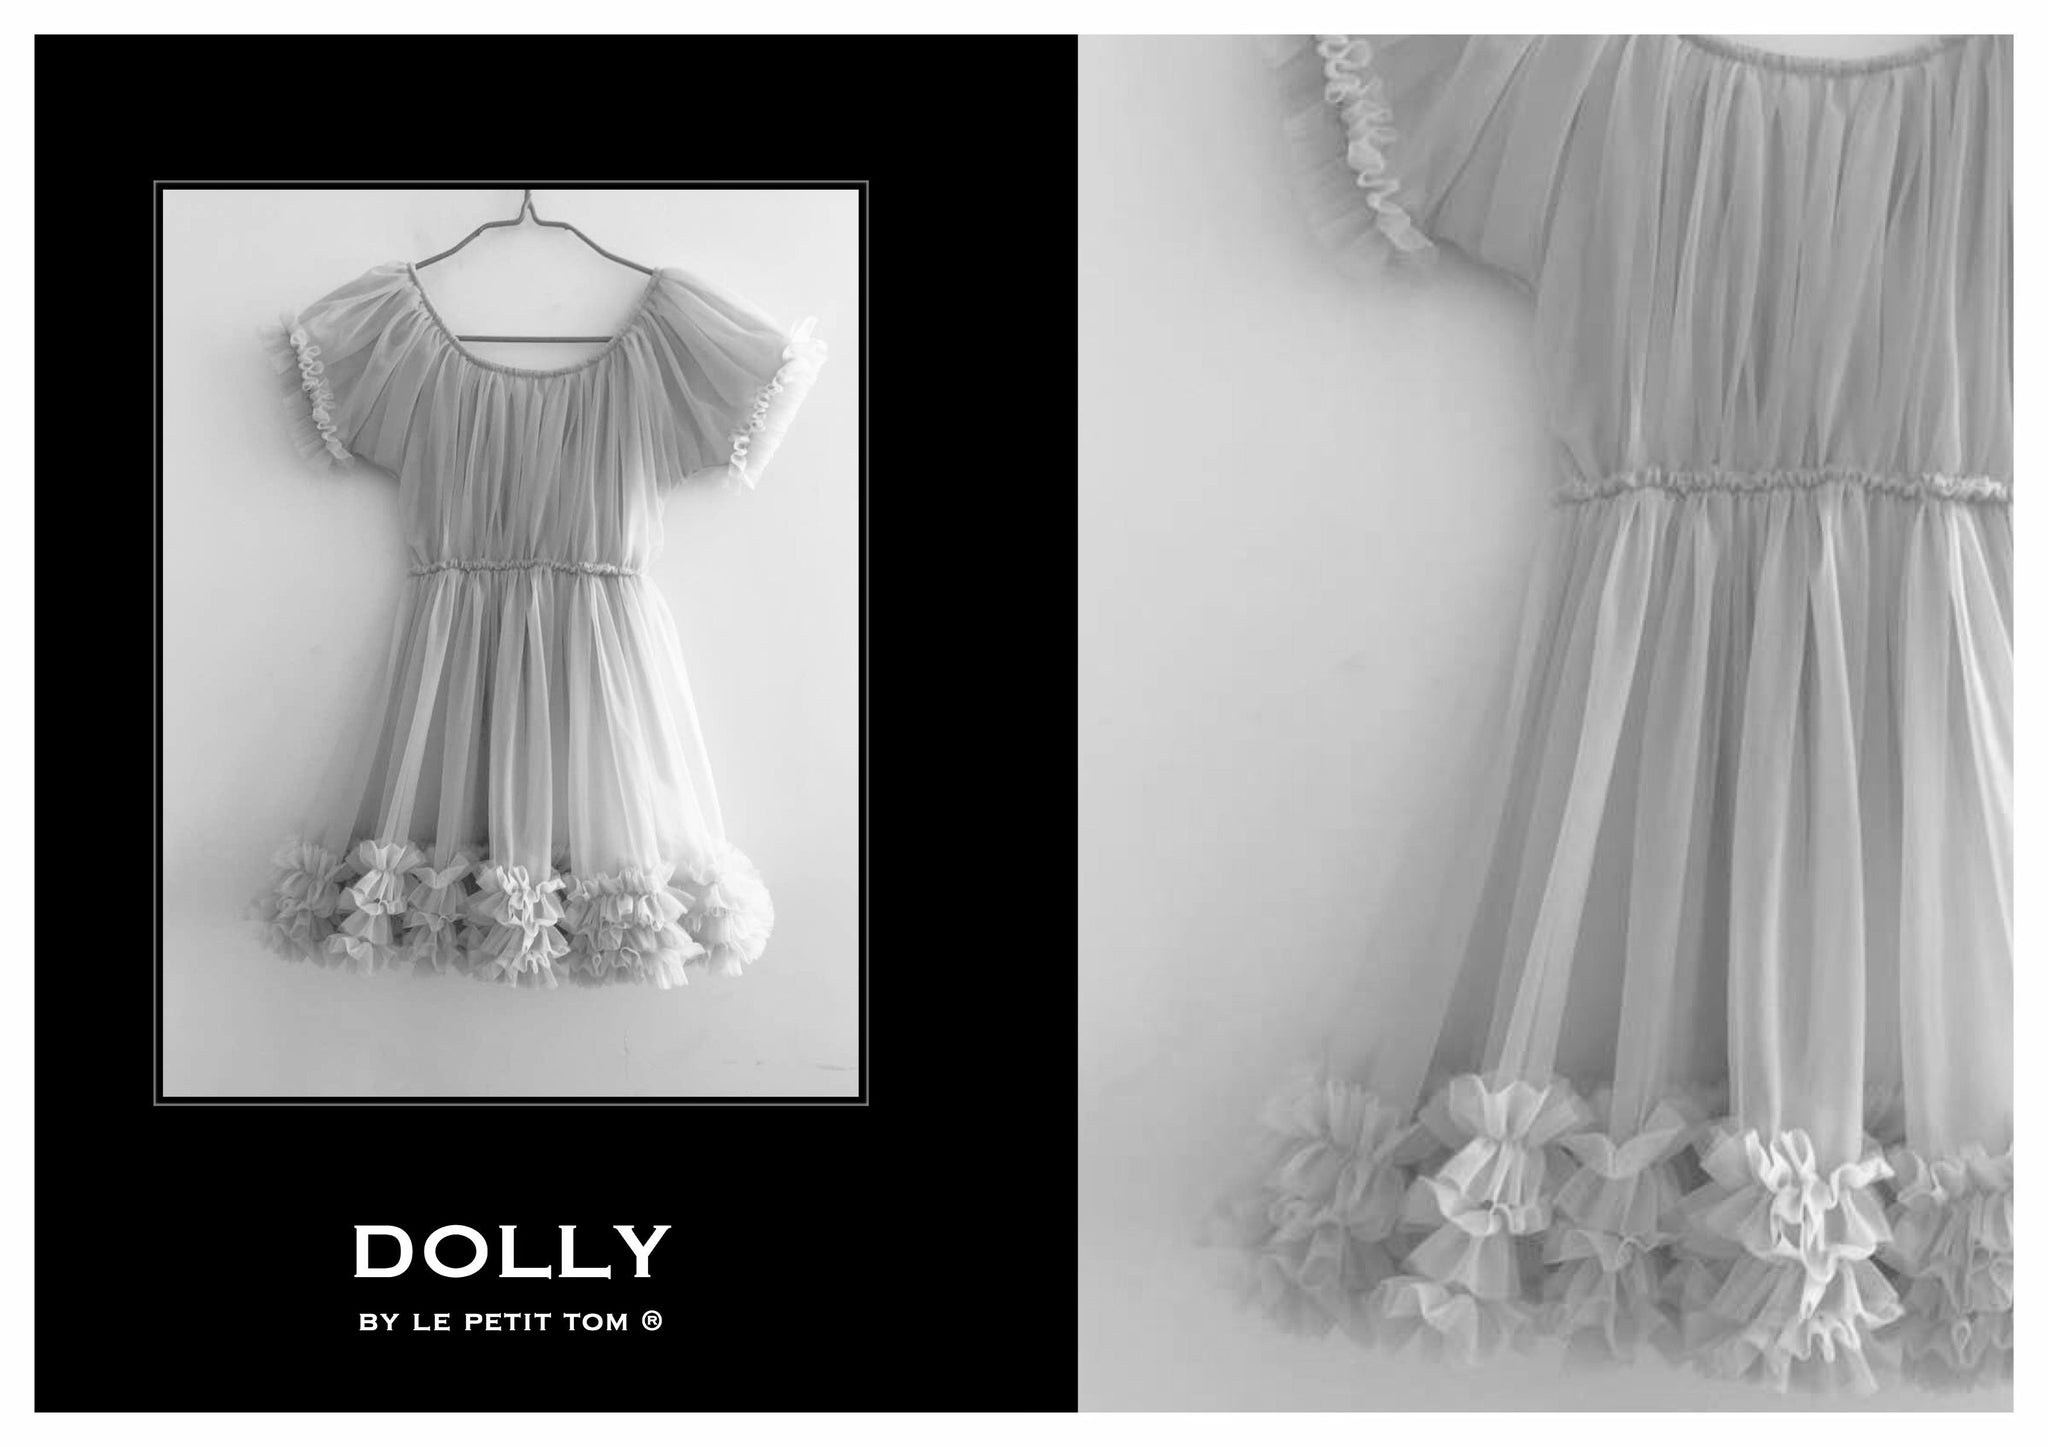 DOLLY by Le Petit Tom ® FRILLY DRESS silvergrey